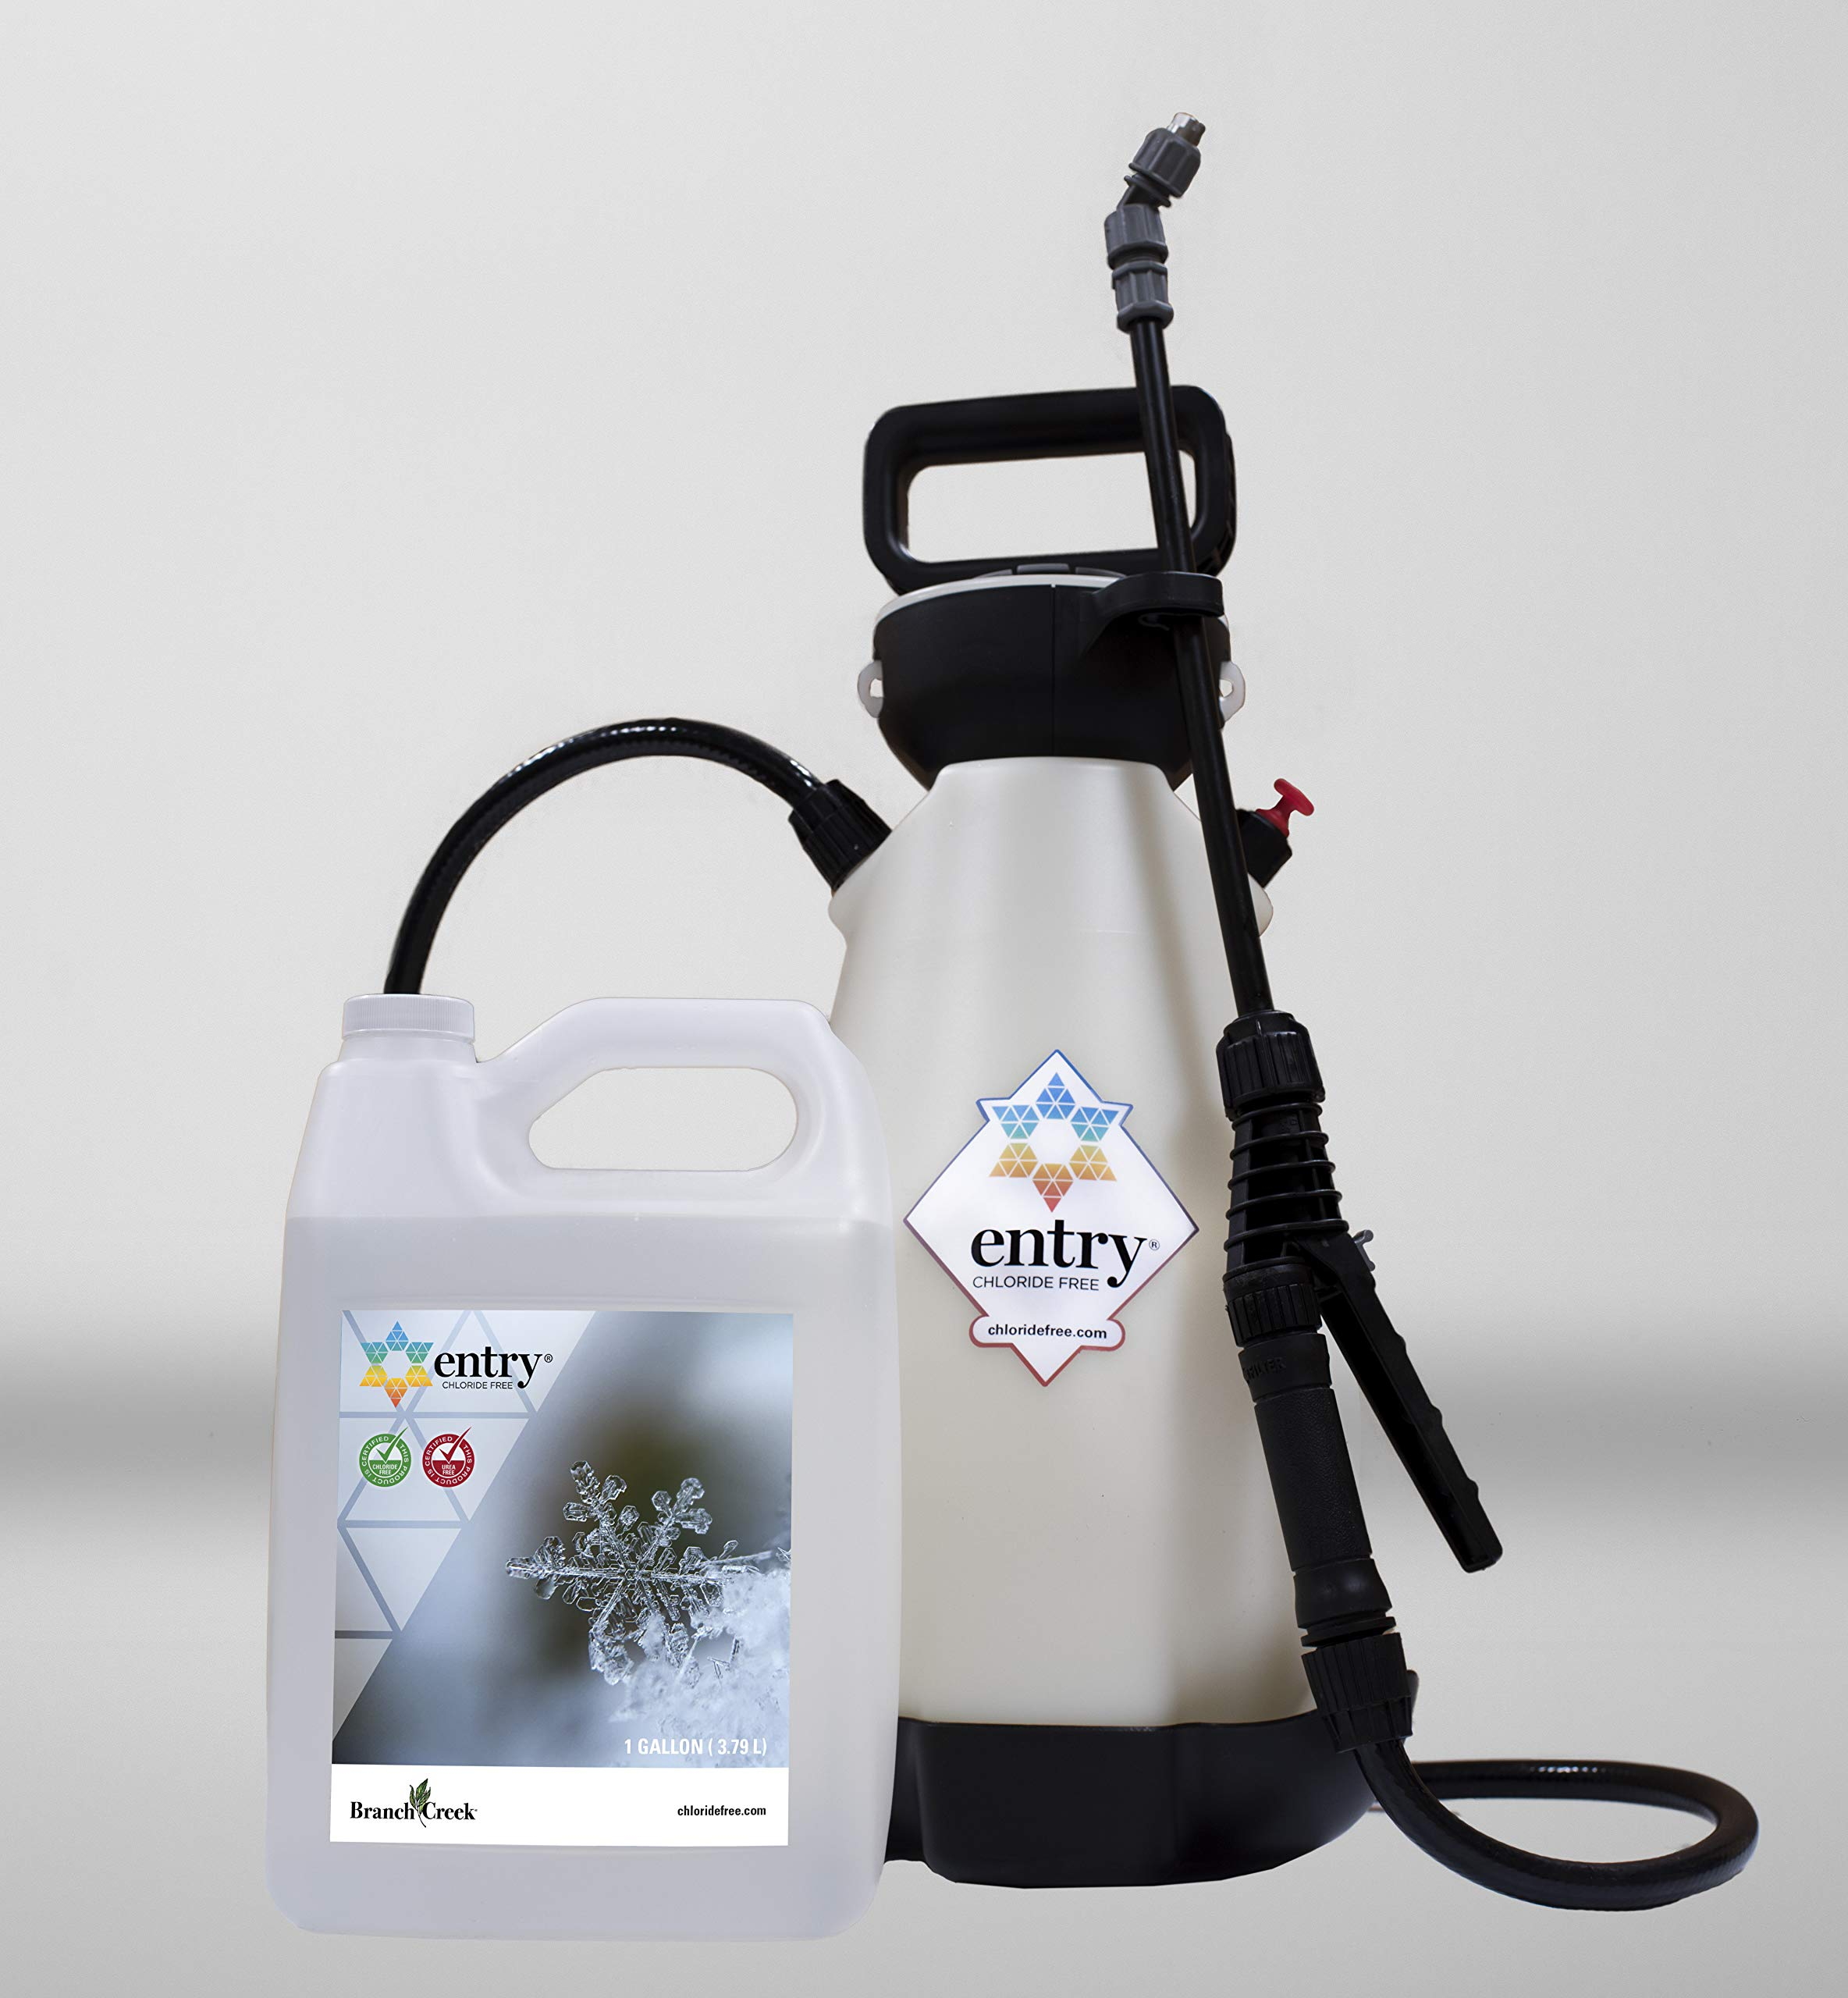 Branch Creek Entry Chloride-Free, Non-Toxic Liquid Ice Melt and Manual Pump Sprayer Bundle-Quick, Clean and Optimal Application-for Entrances of Commercial and Larger Residential Properties (1 Gallon) by Branch Creek